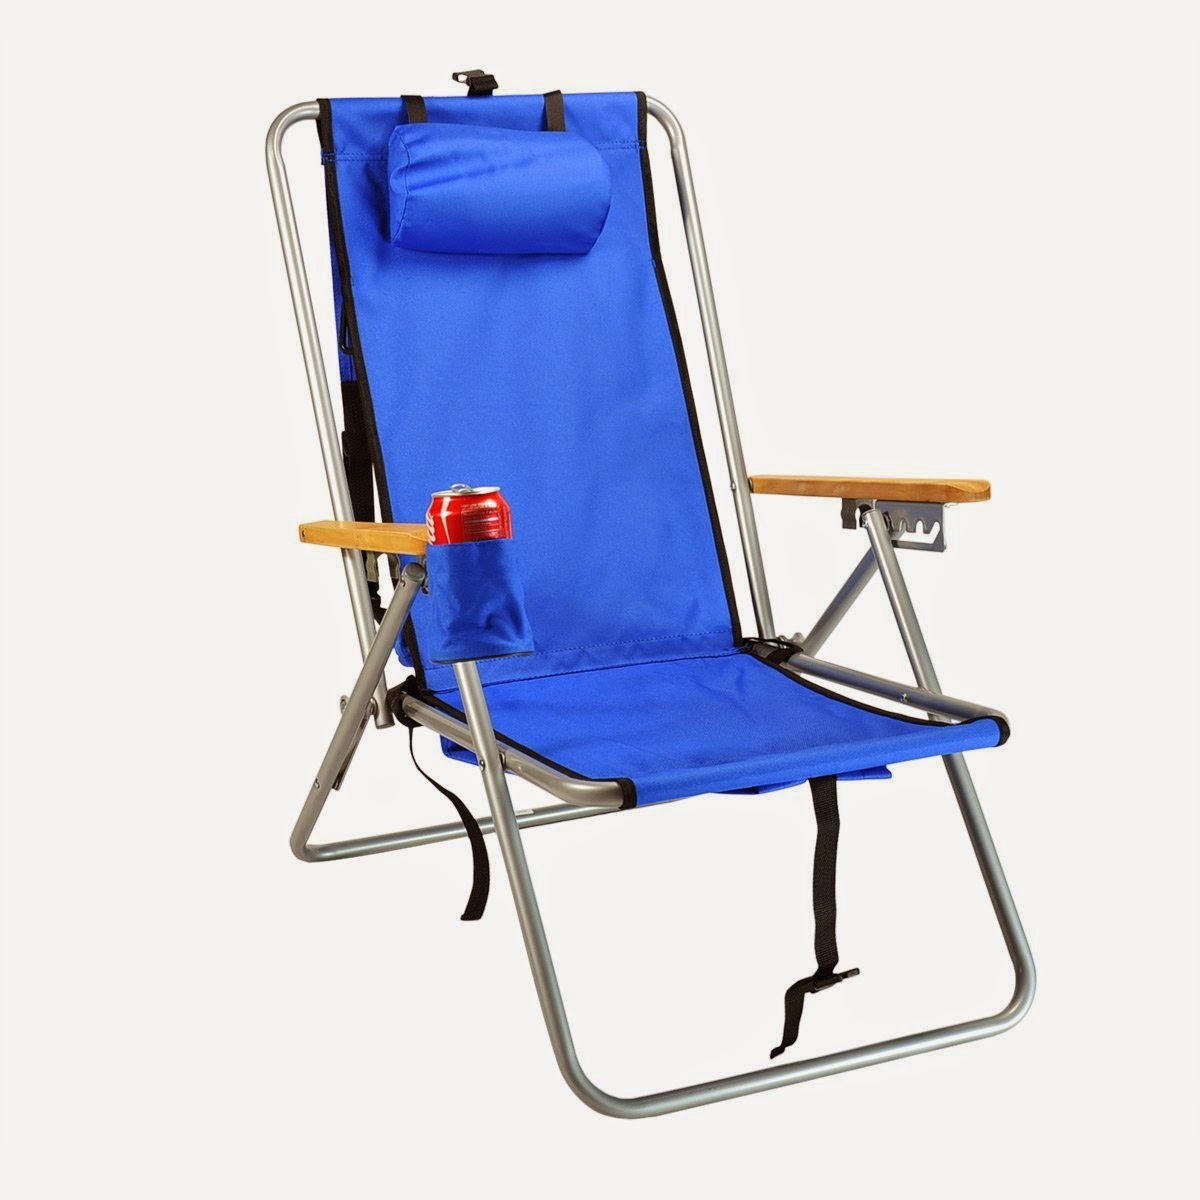 cheap beach chairs: backpack beach chairs